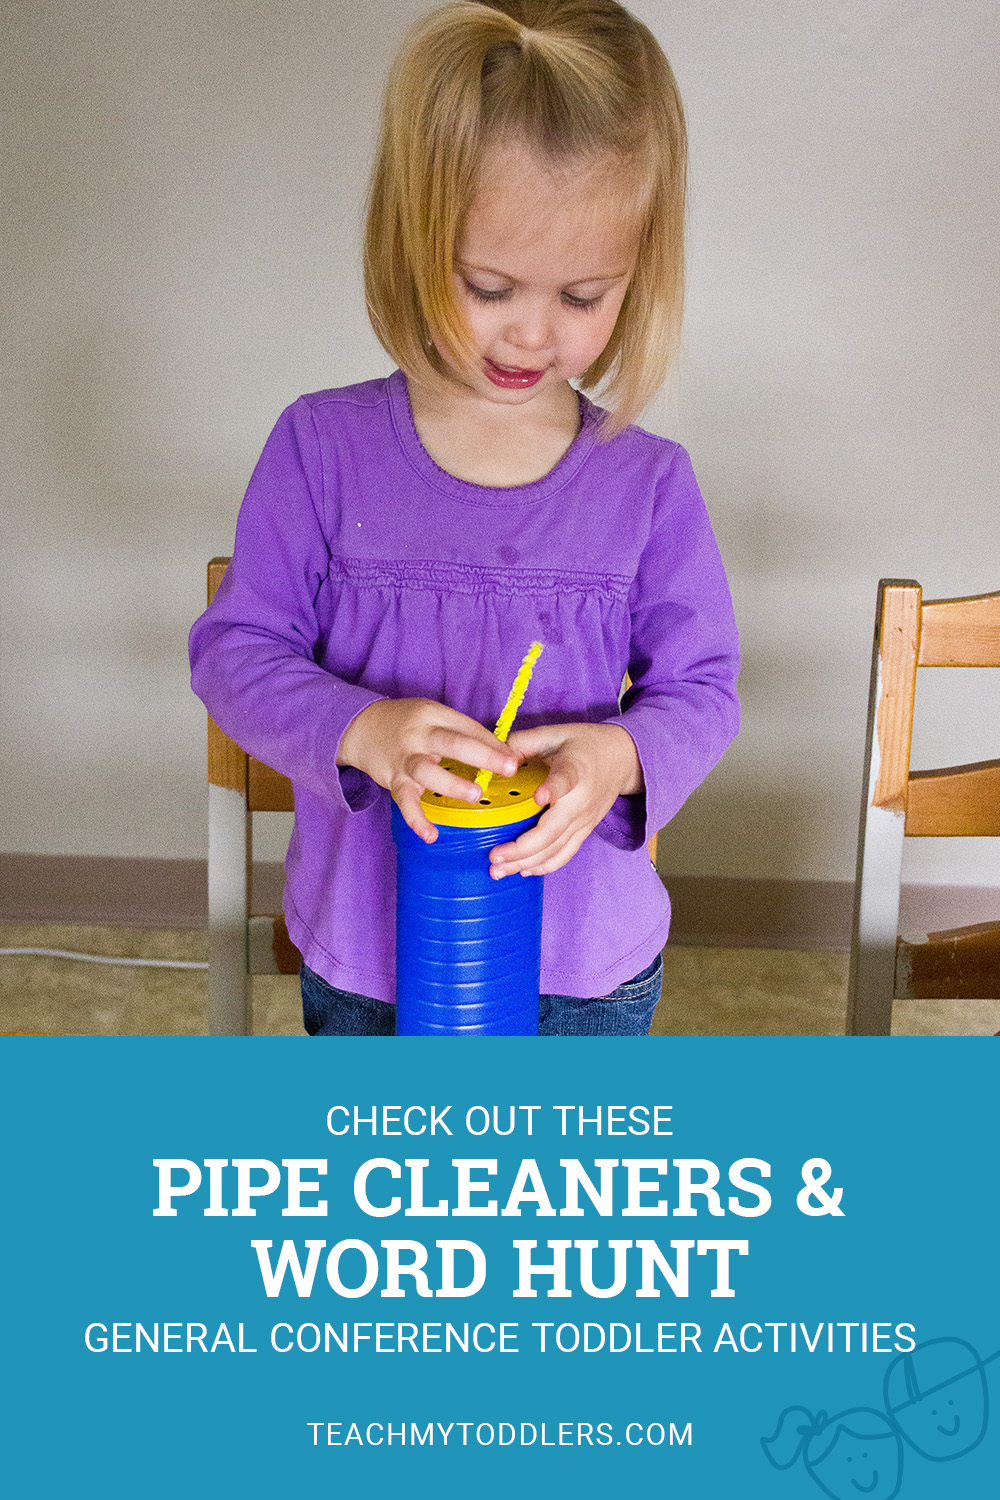 Check out these pipe cleaners and word hunt general conference toddler activities